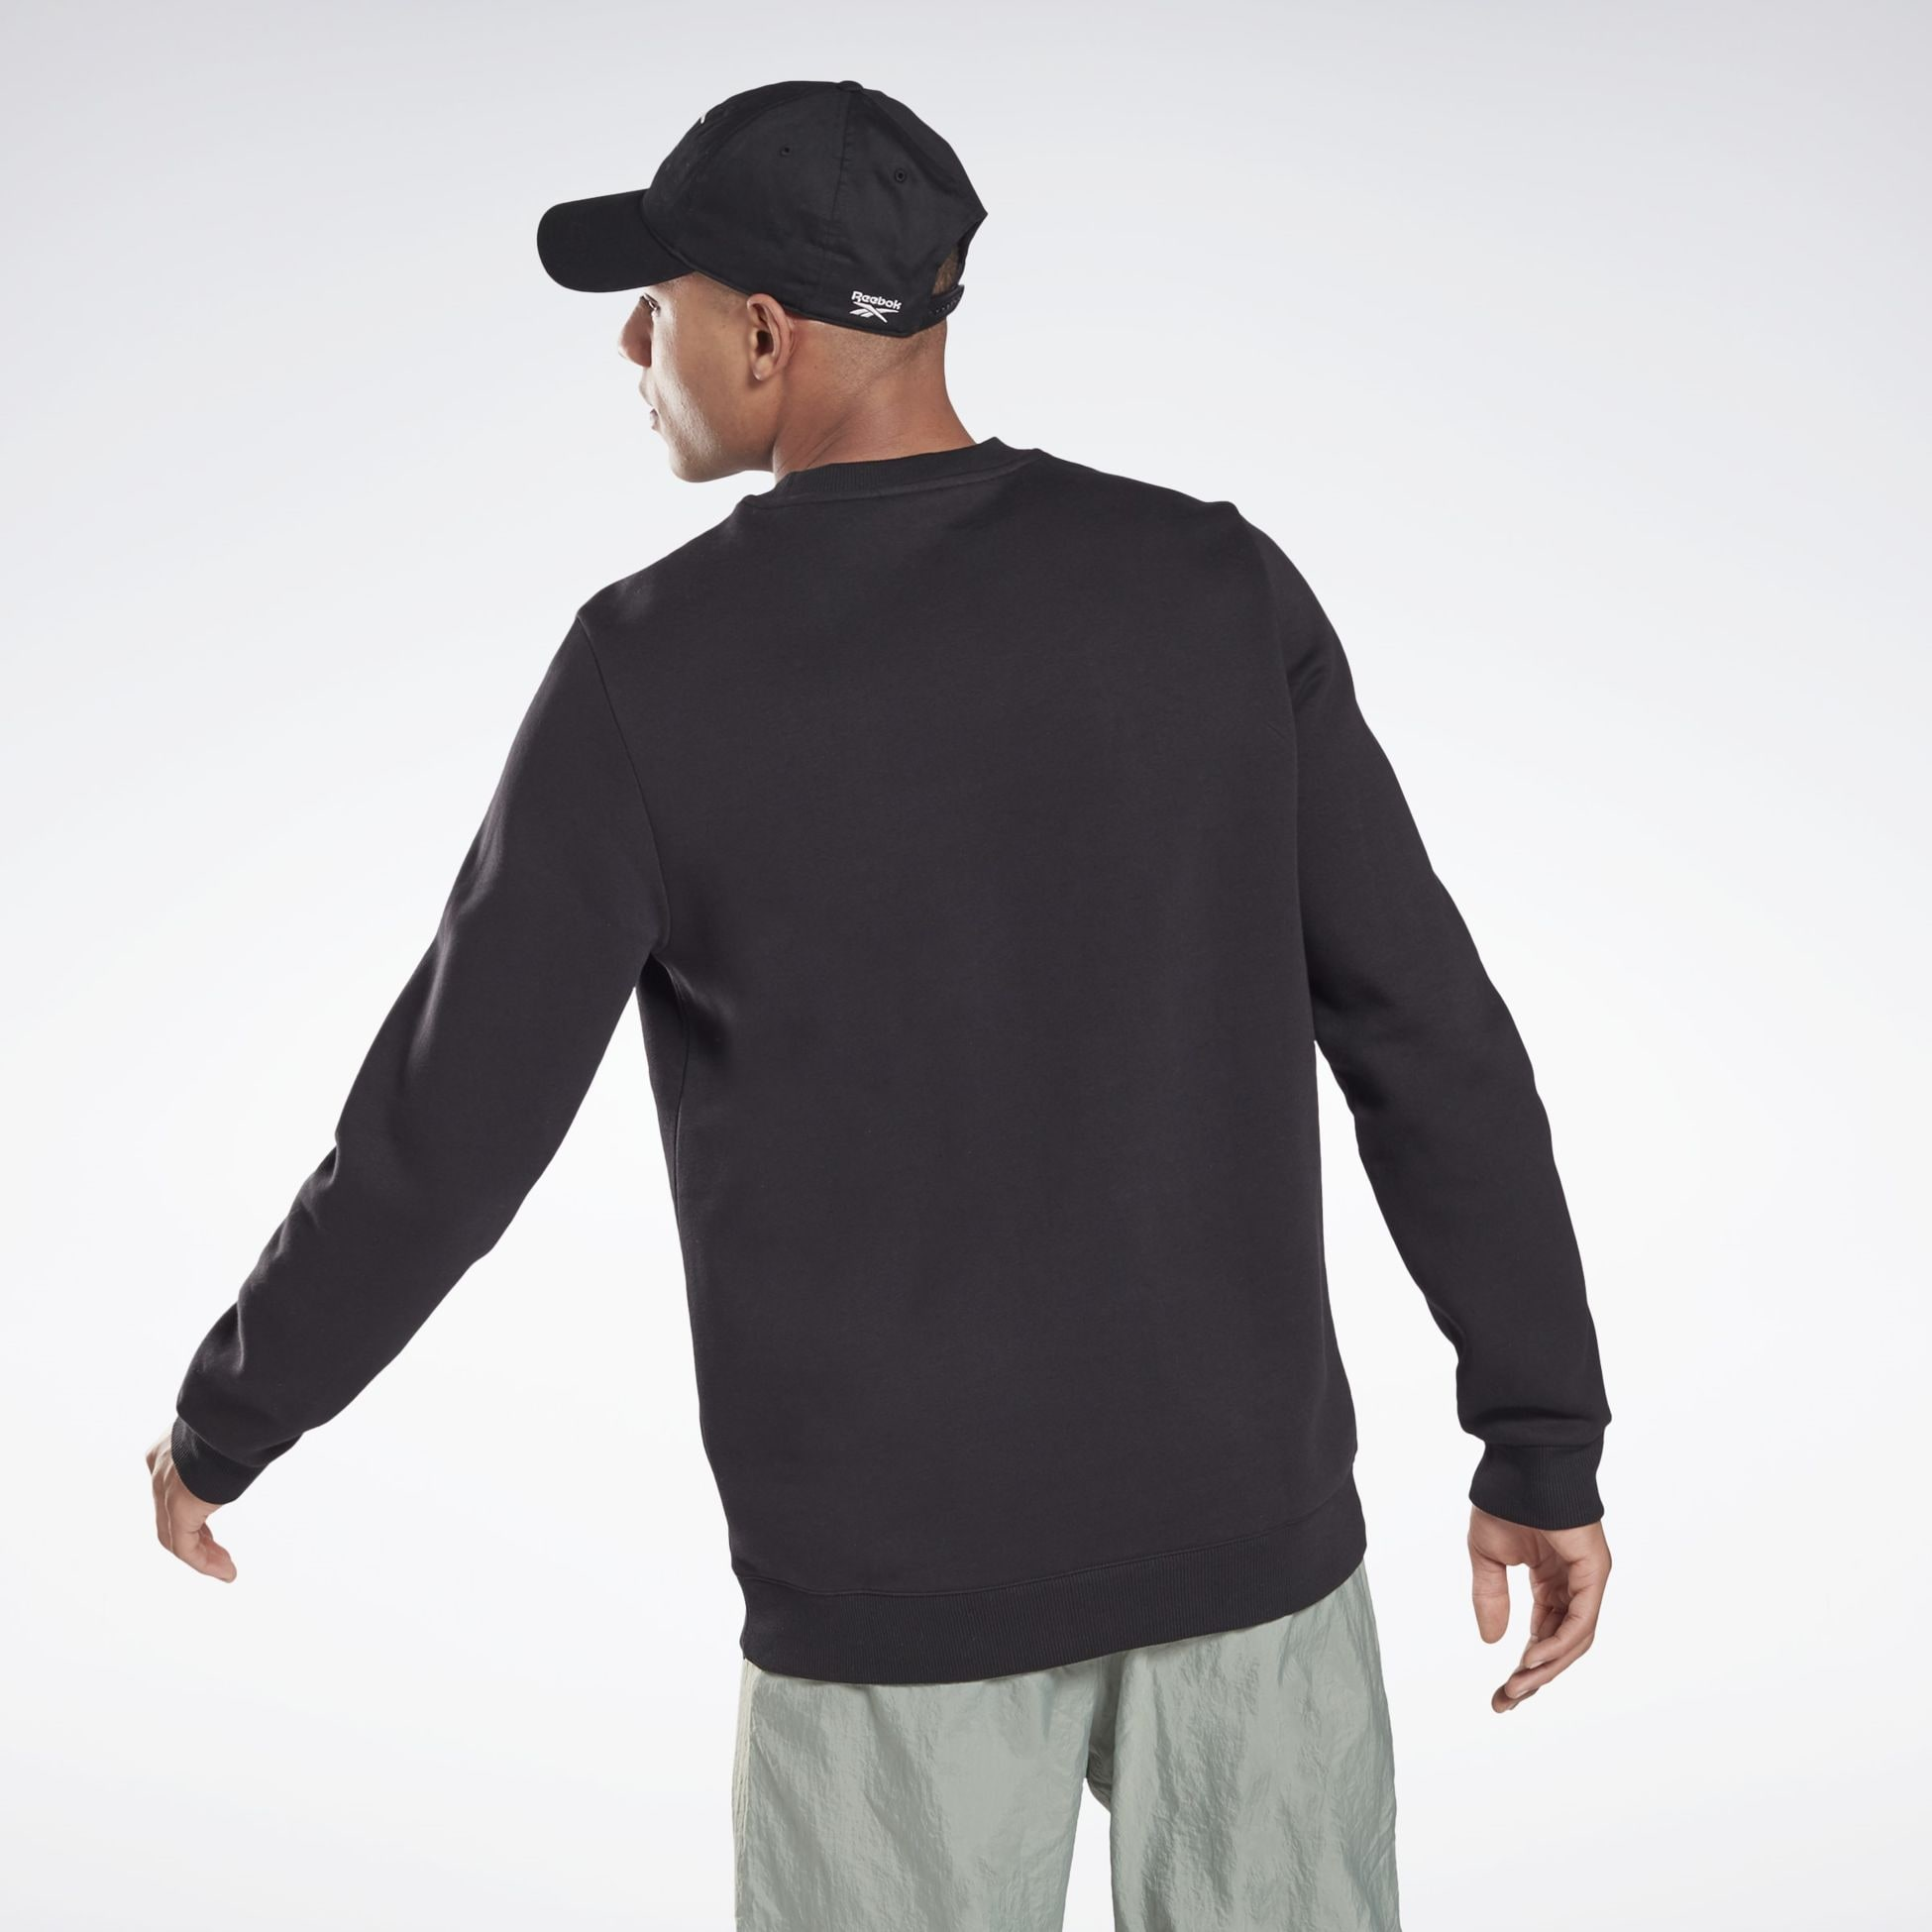 356049104101, Identity Fleece Crew Sweatshirt, REEBOK, Detail